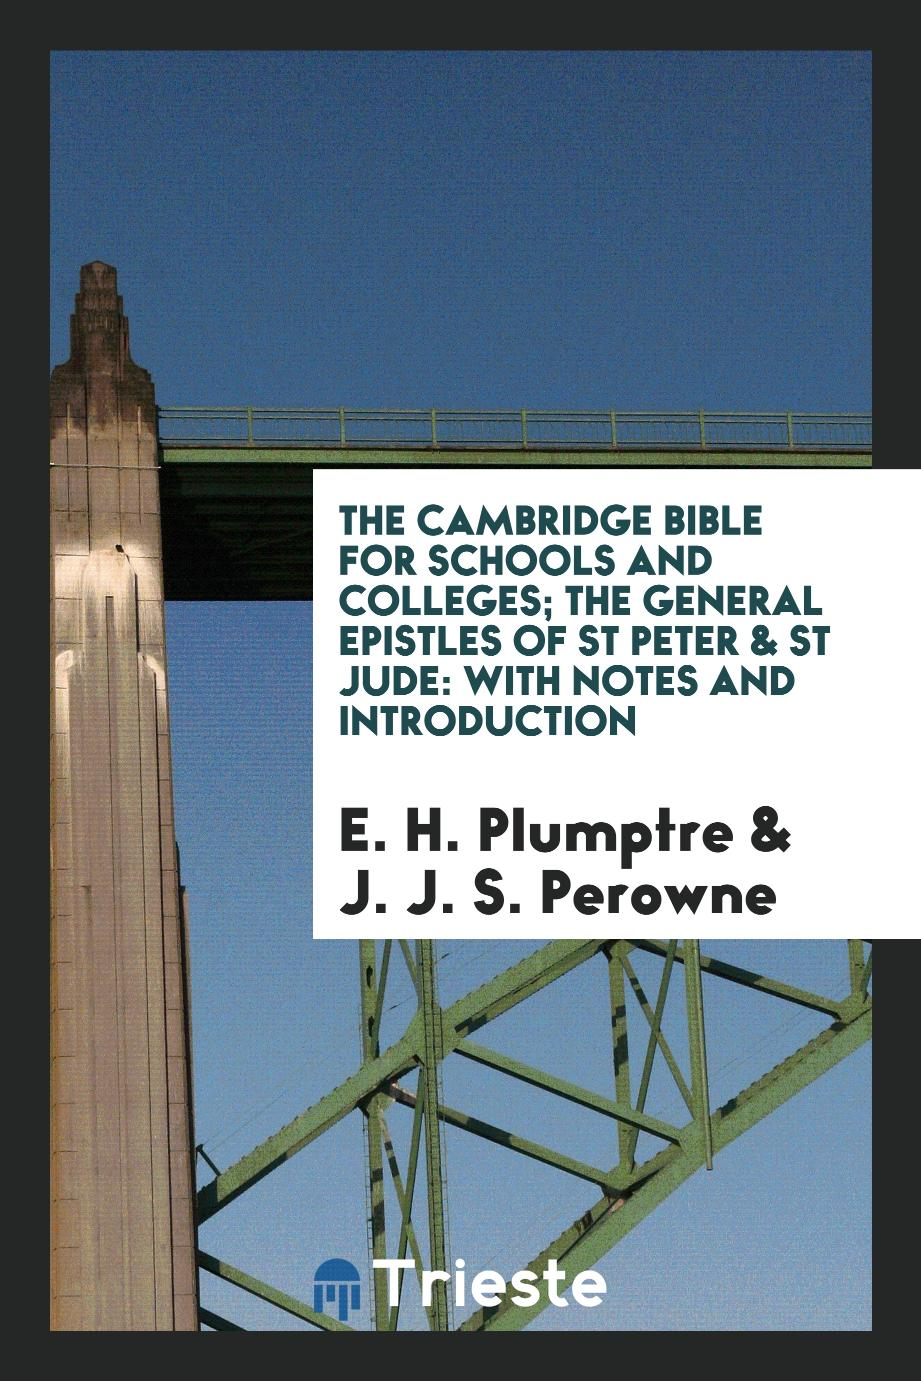 The Cambridge Bible for Schools and Colleges; The General Epistles of St Peter & St Jude: With Notes and Introduction